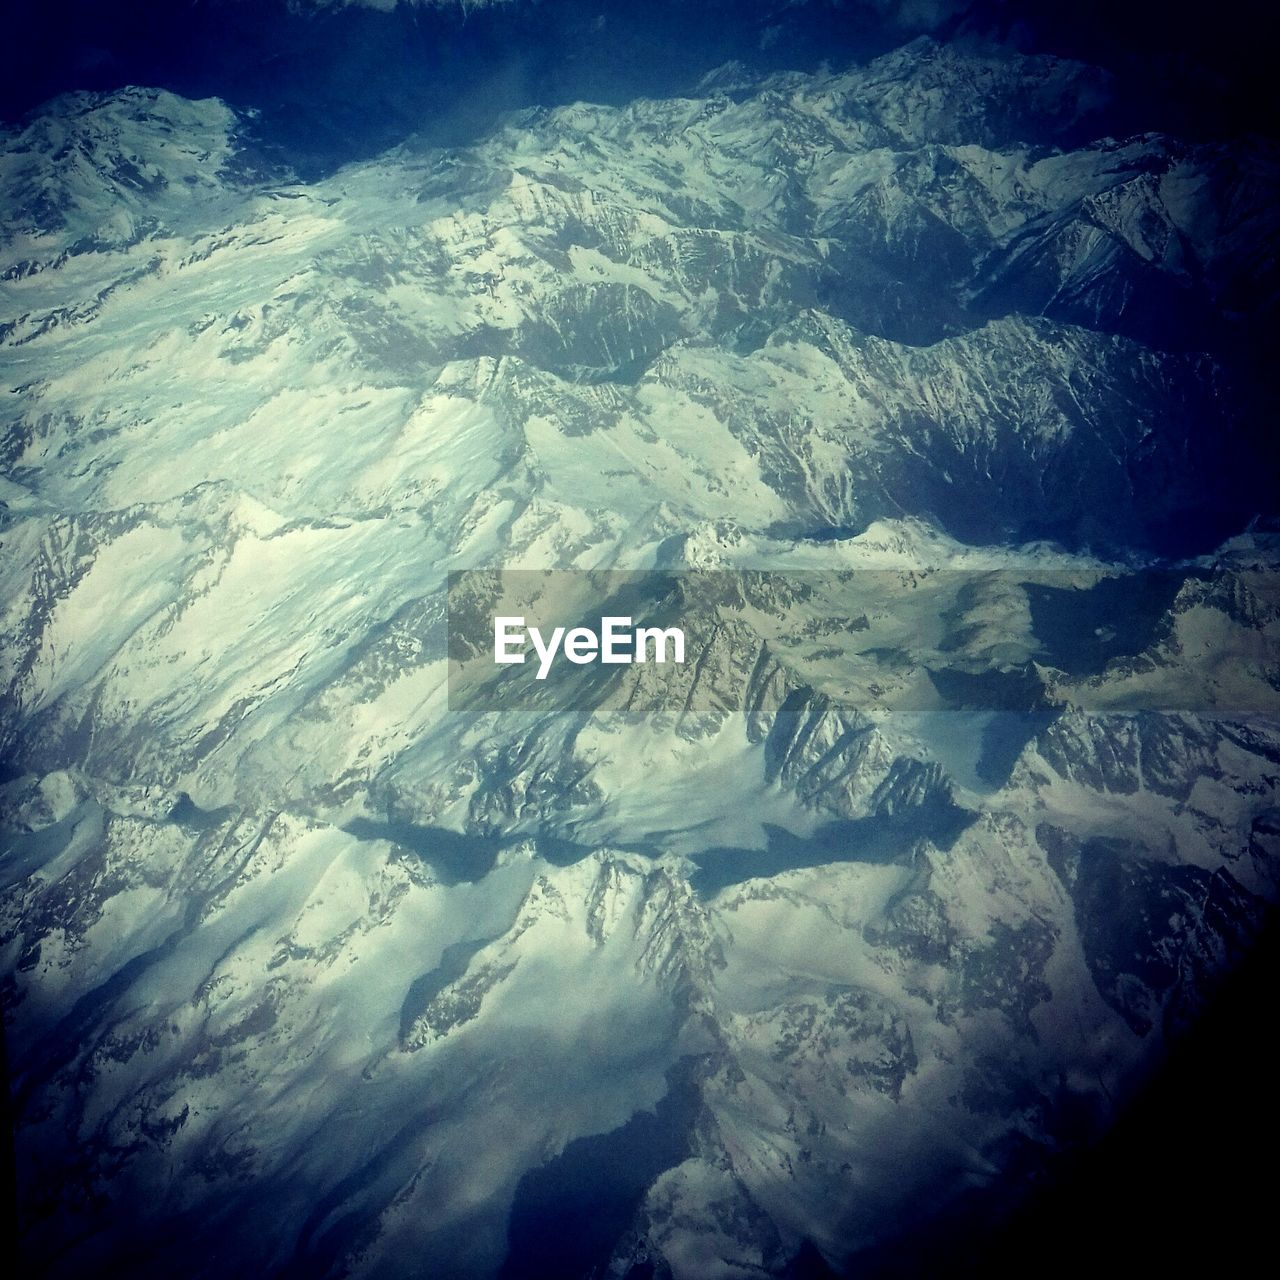 weather, aerial view, landscape, nature, cold temperature, extreme weather, beauty in nature, snow, scenics, outdoors, day, no people, backgrounds, tranquility, winter, power in nature, mountain, satellite view